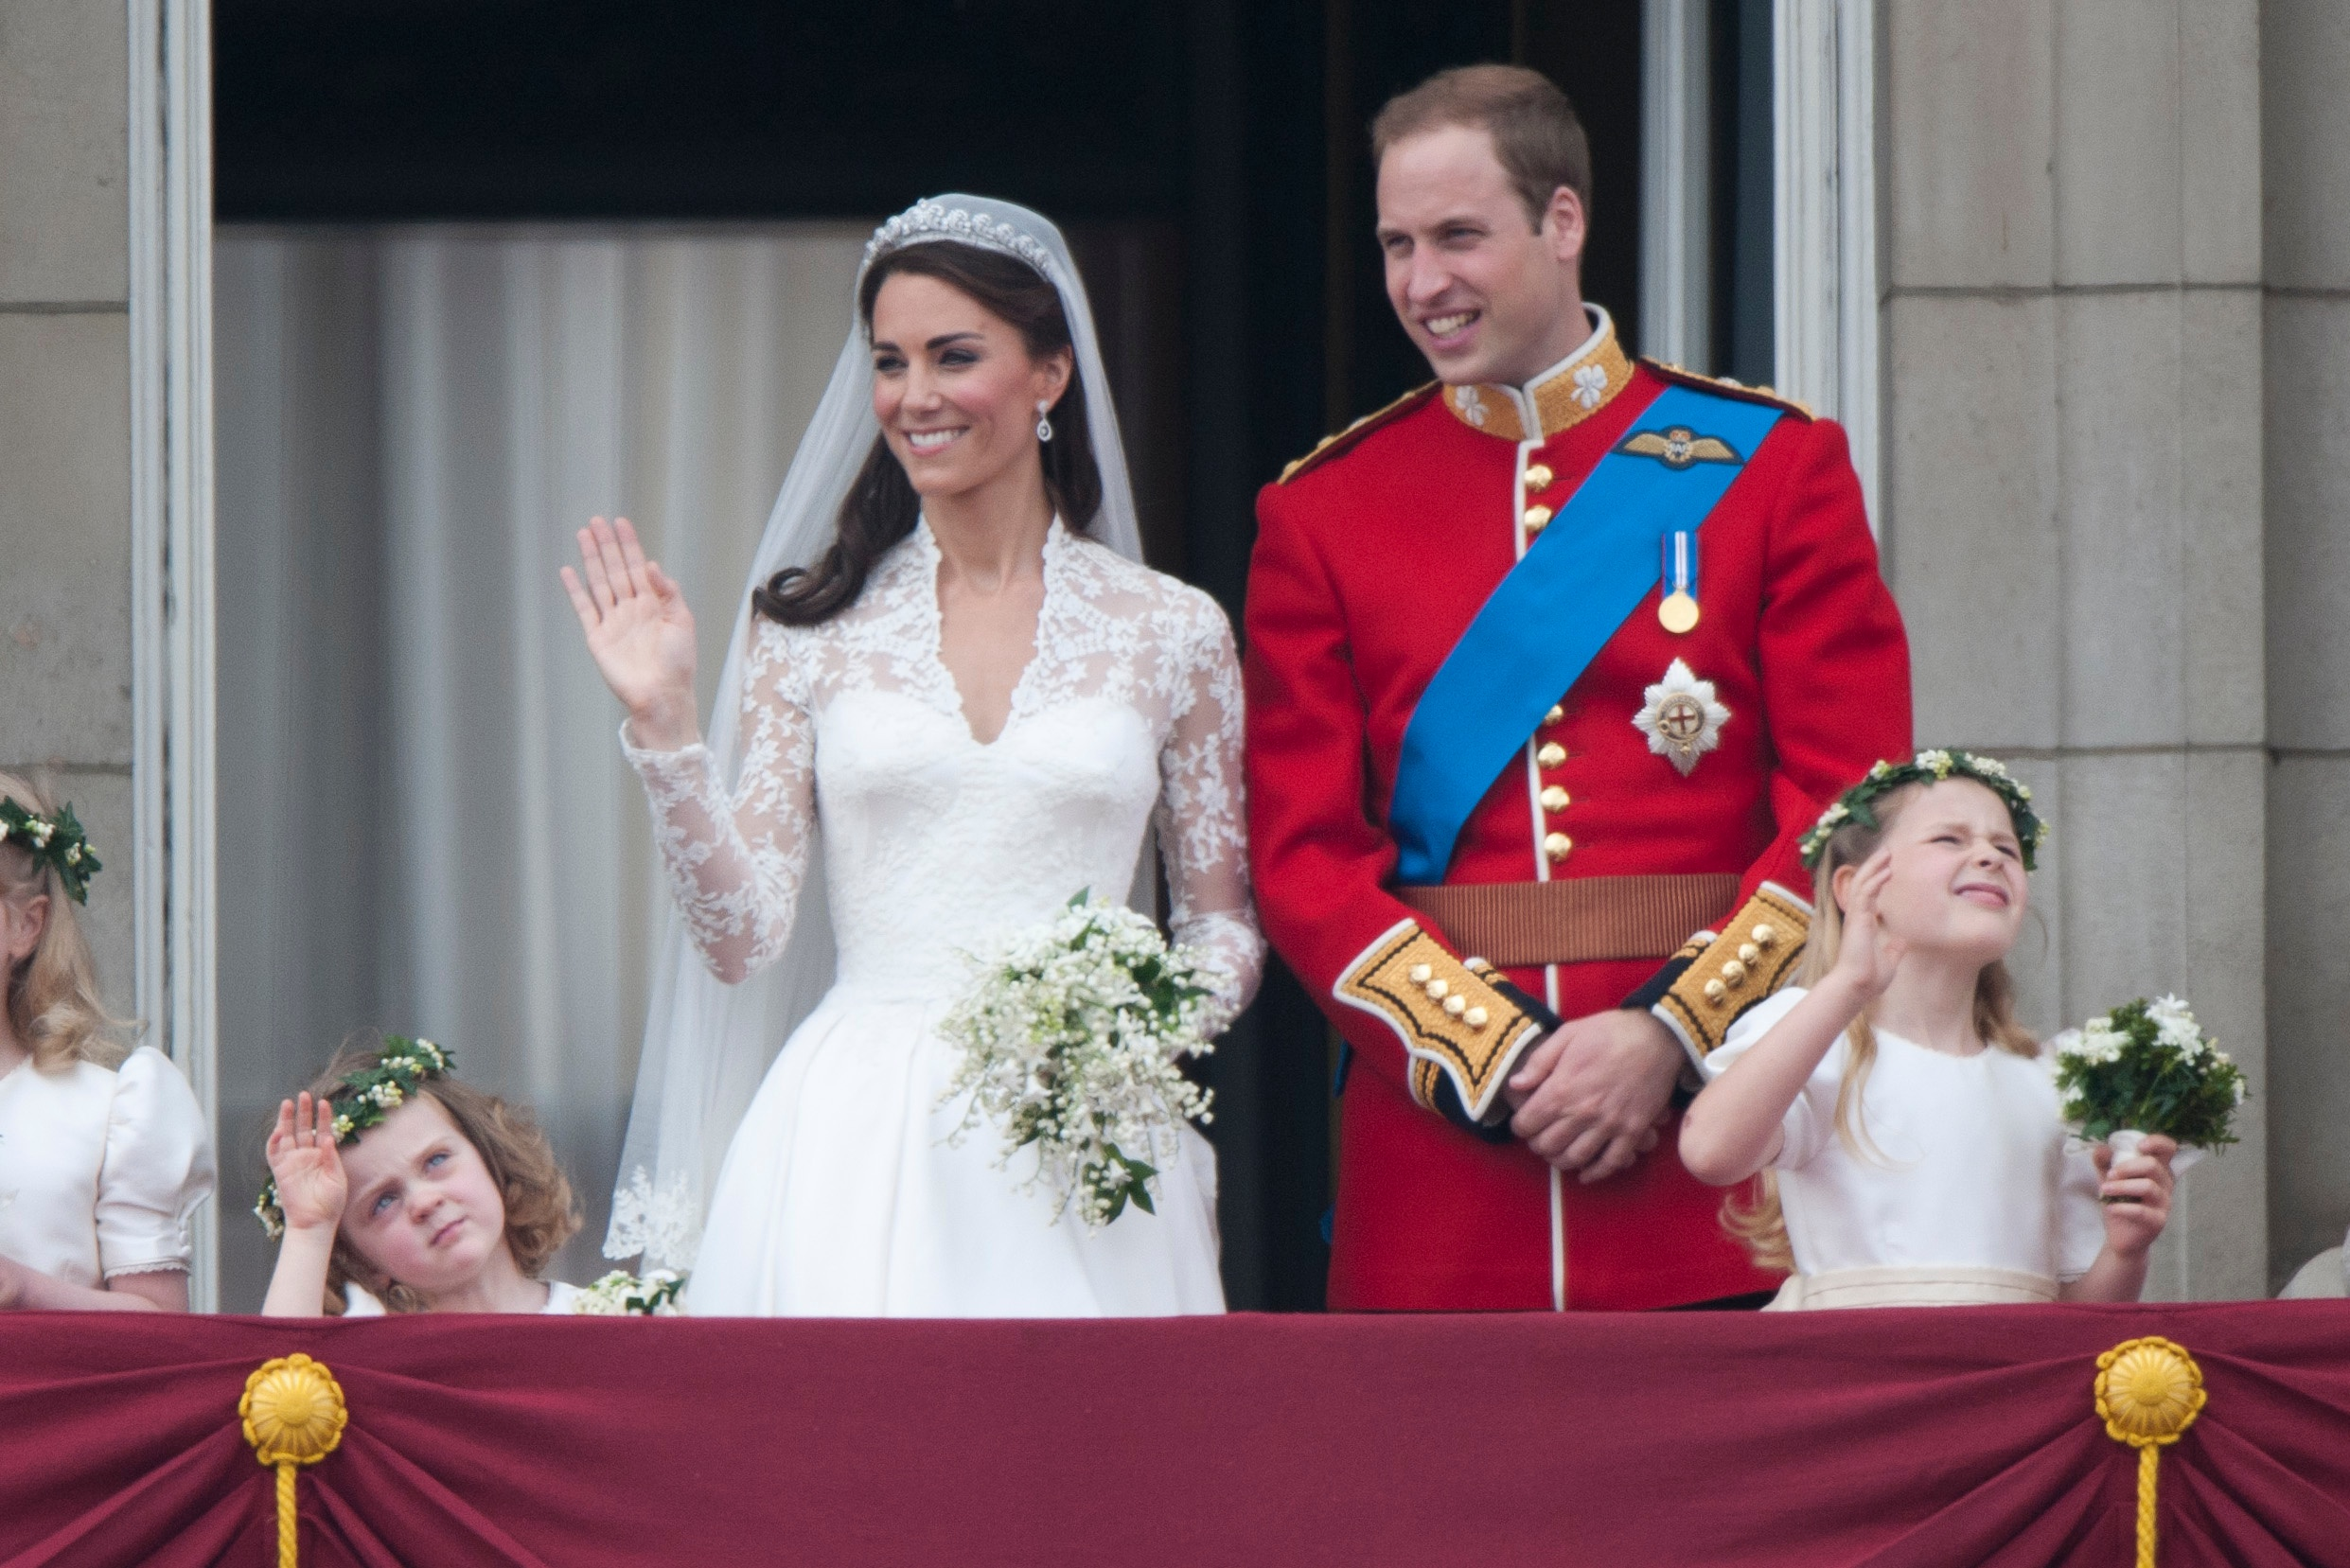 Catherine, Duchess of Cambridge and Prince William, Duke of Cambridge on the balcony at Buckingham Palace with Bridesmaids Margarita Armstrong-Jones (Right) And Grace Van Cutsem (Left), following their wedding at Westminster Abbey on April 29, 2011 in London, England.